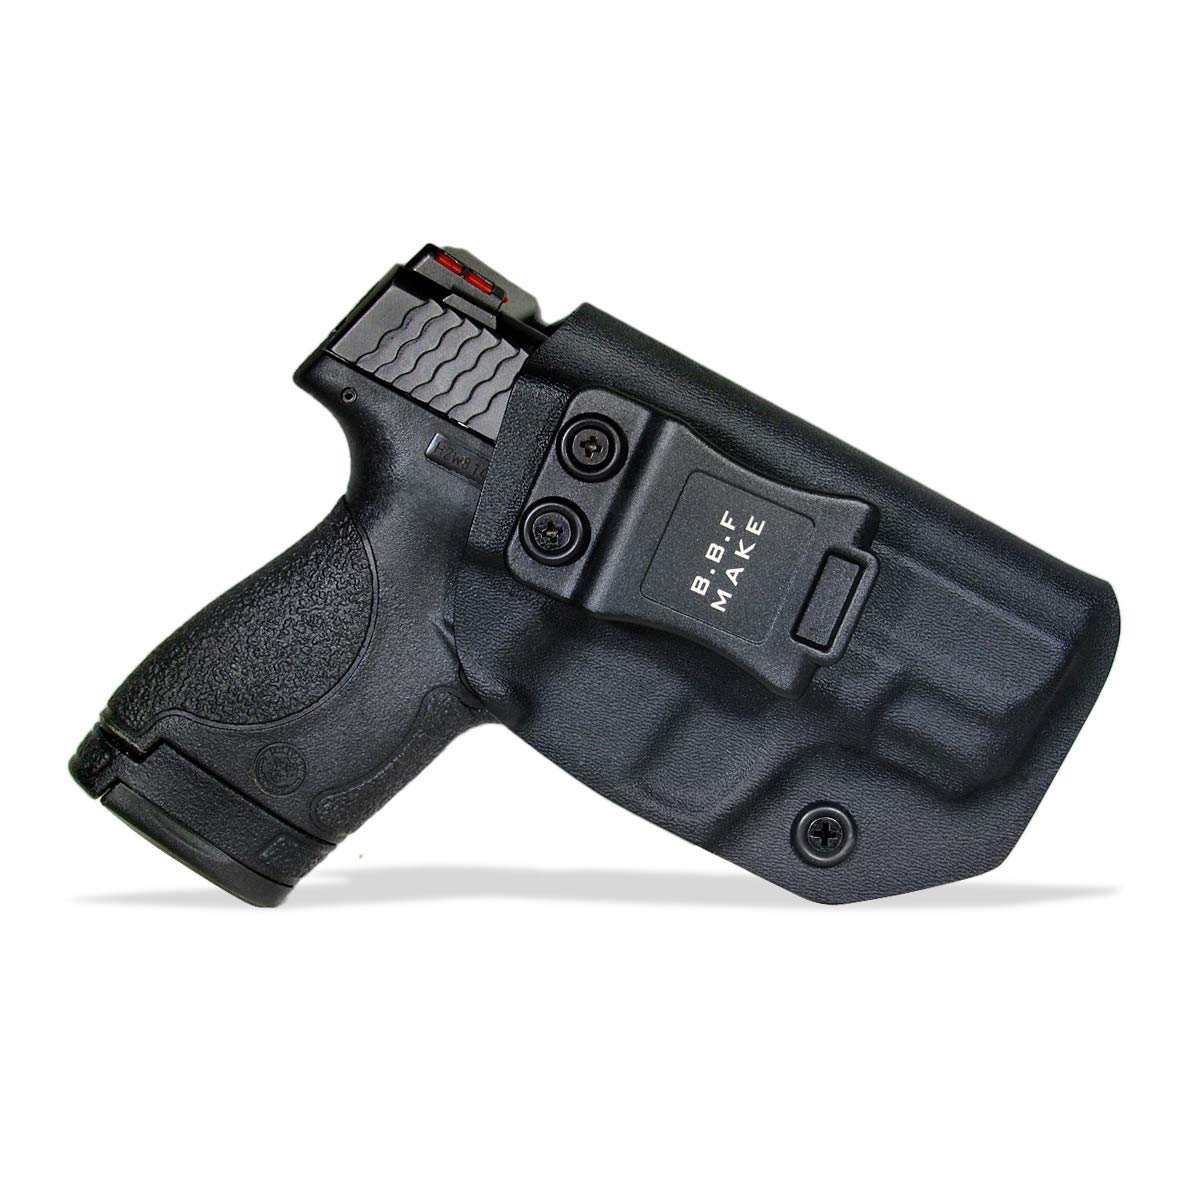 B.B.F Make IWB KYDEX Holster Fit: Smith & Wesson M&P Shield & Shield 2.0-9MM /.40 S&W | Retired Navy Owned Company | Inside Waistband | Adjustable Cant (Black, Left Hand Draw (IWB)) by B.B.F Make